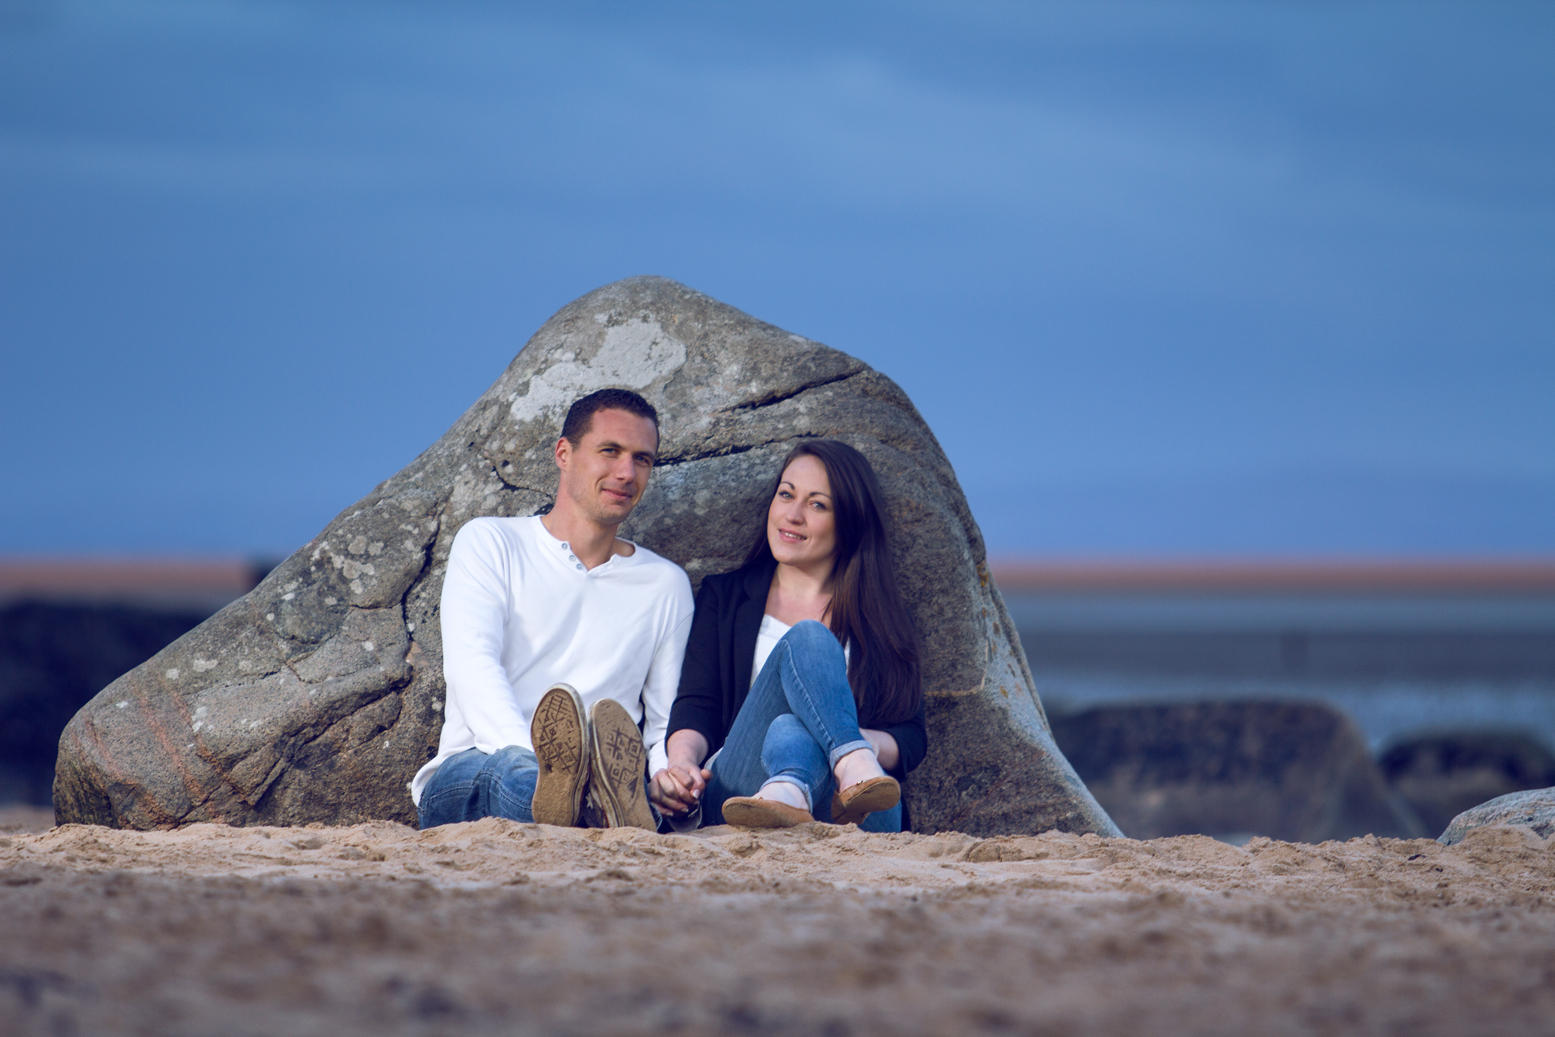 sunset engagment shoot reportage dumfries